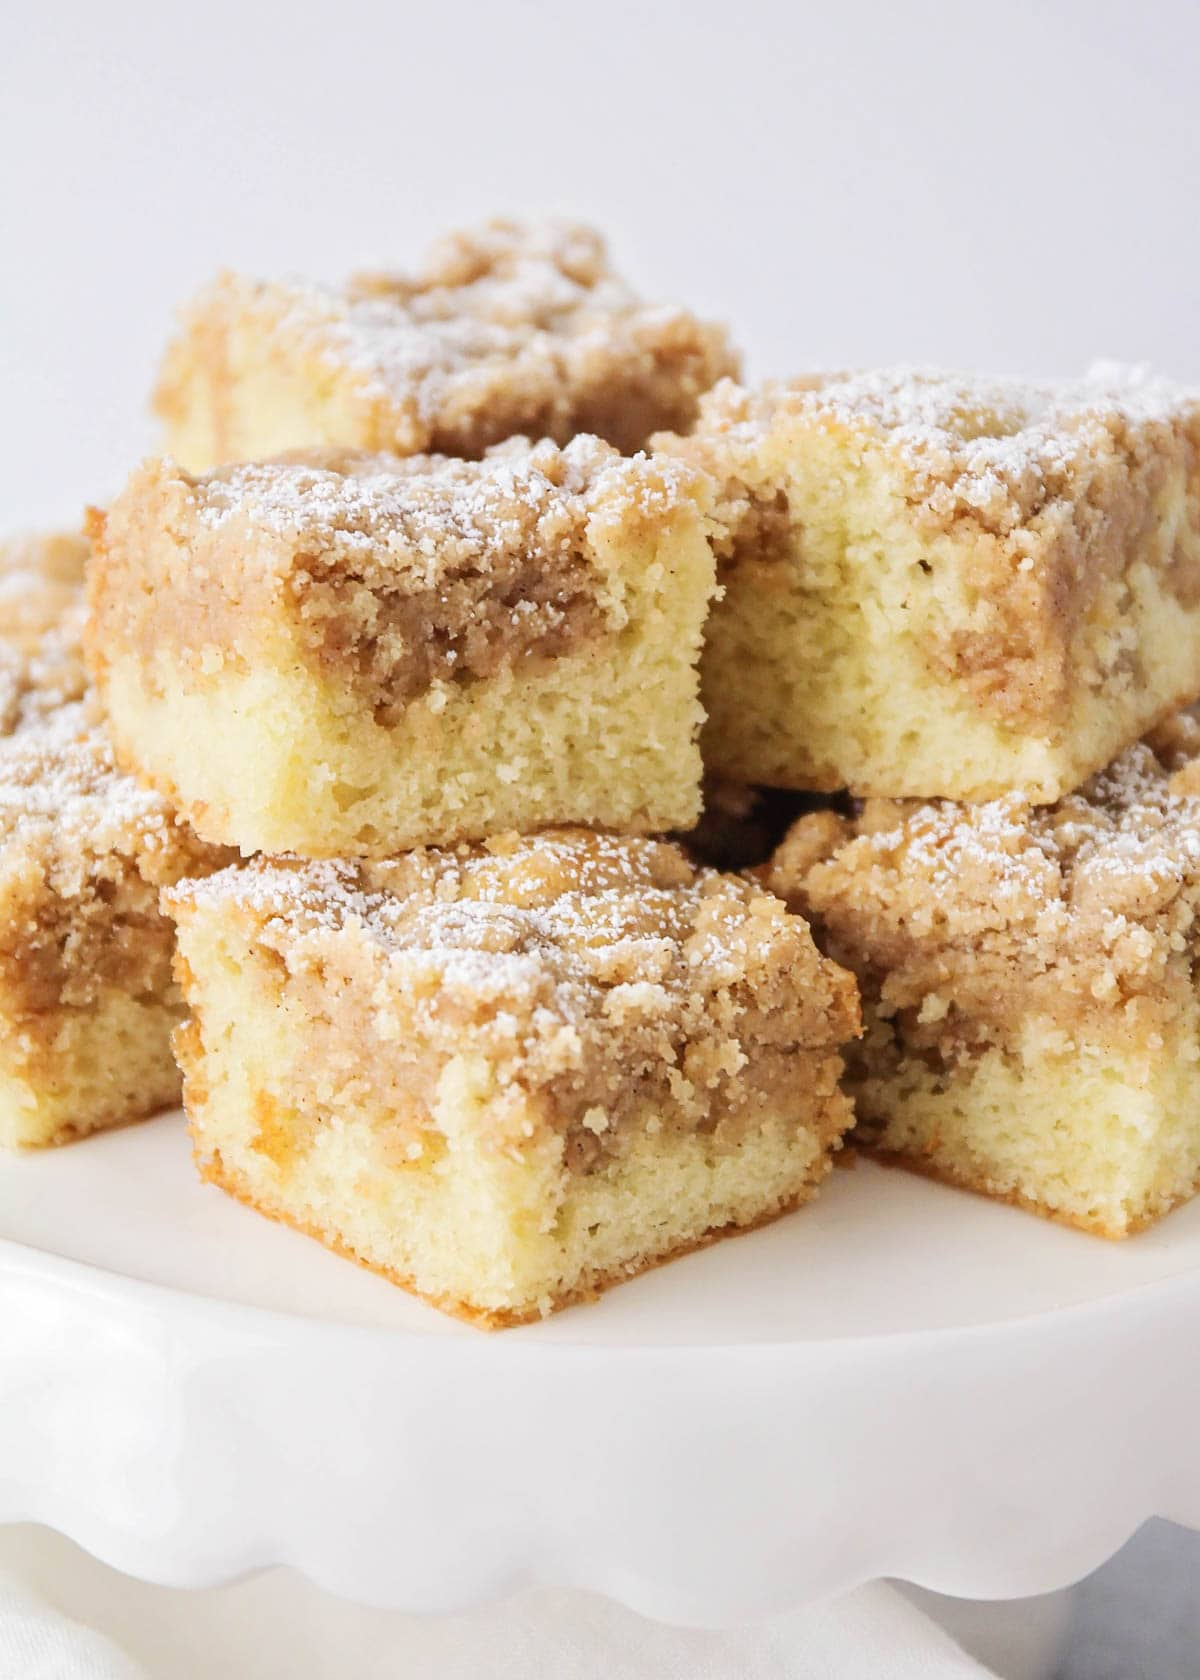 Slices of ny style crumb cake on a cake stand